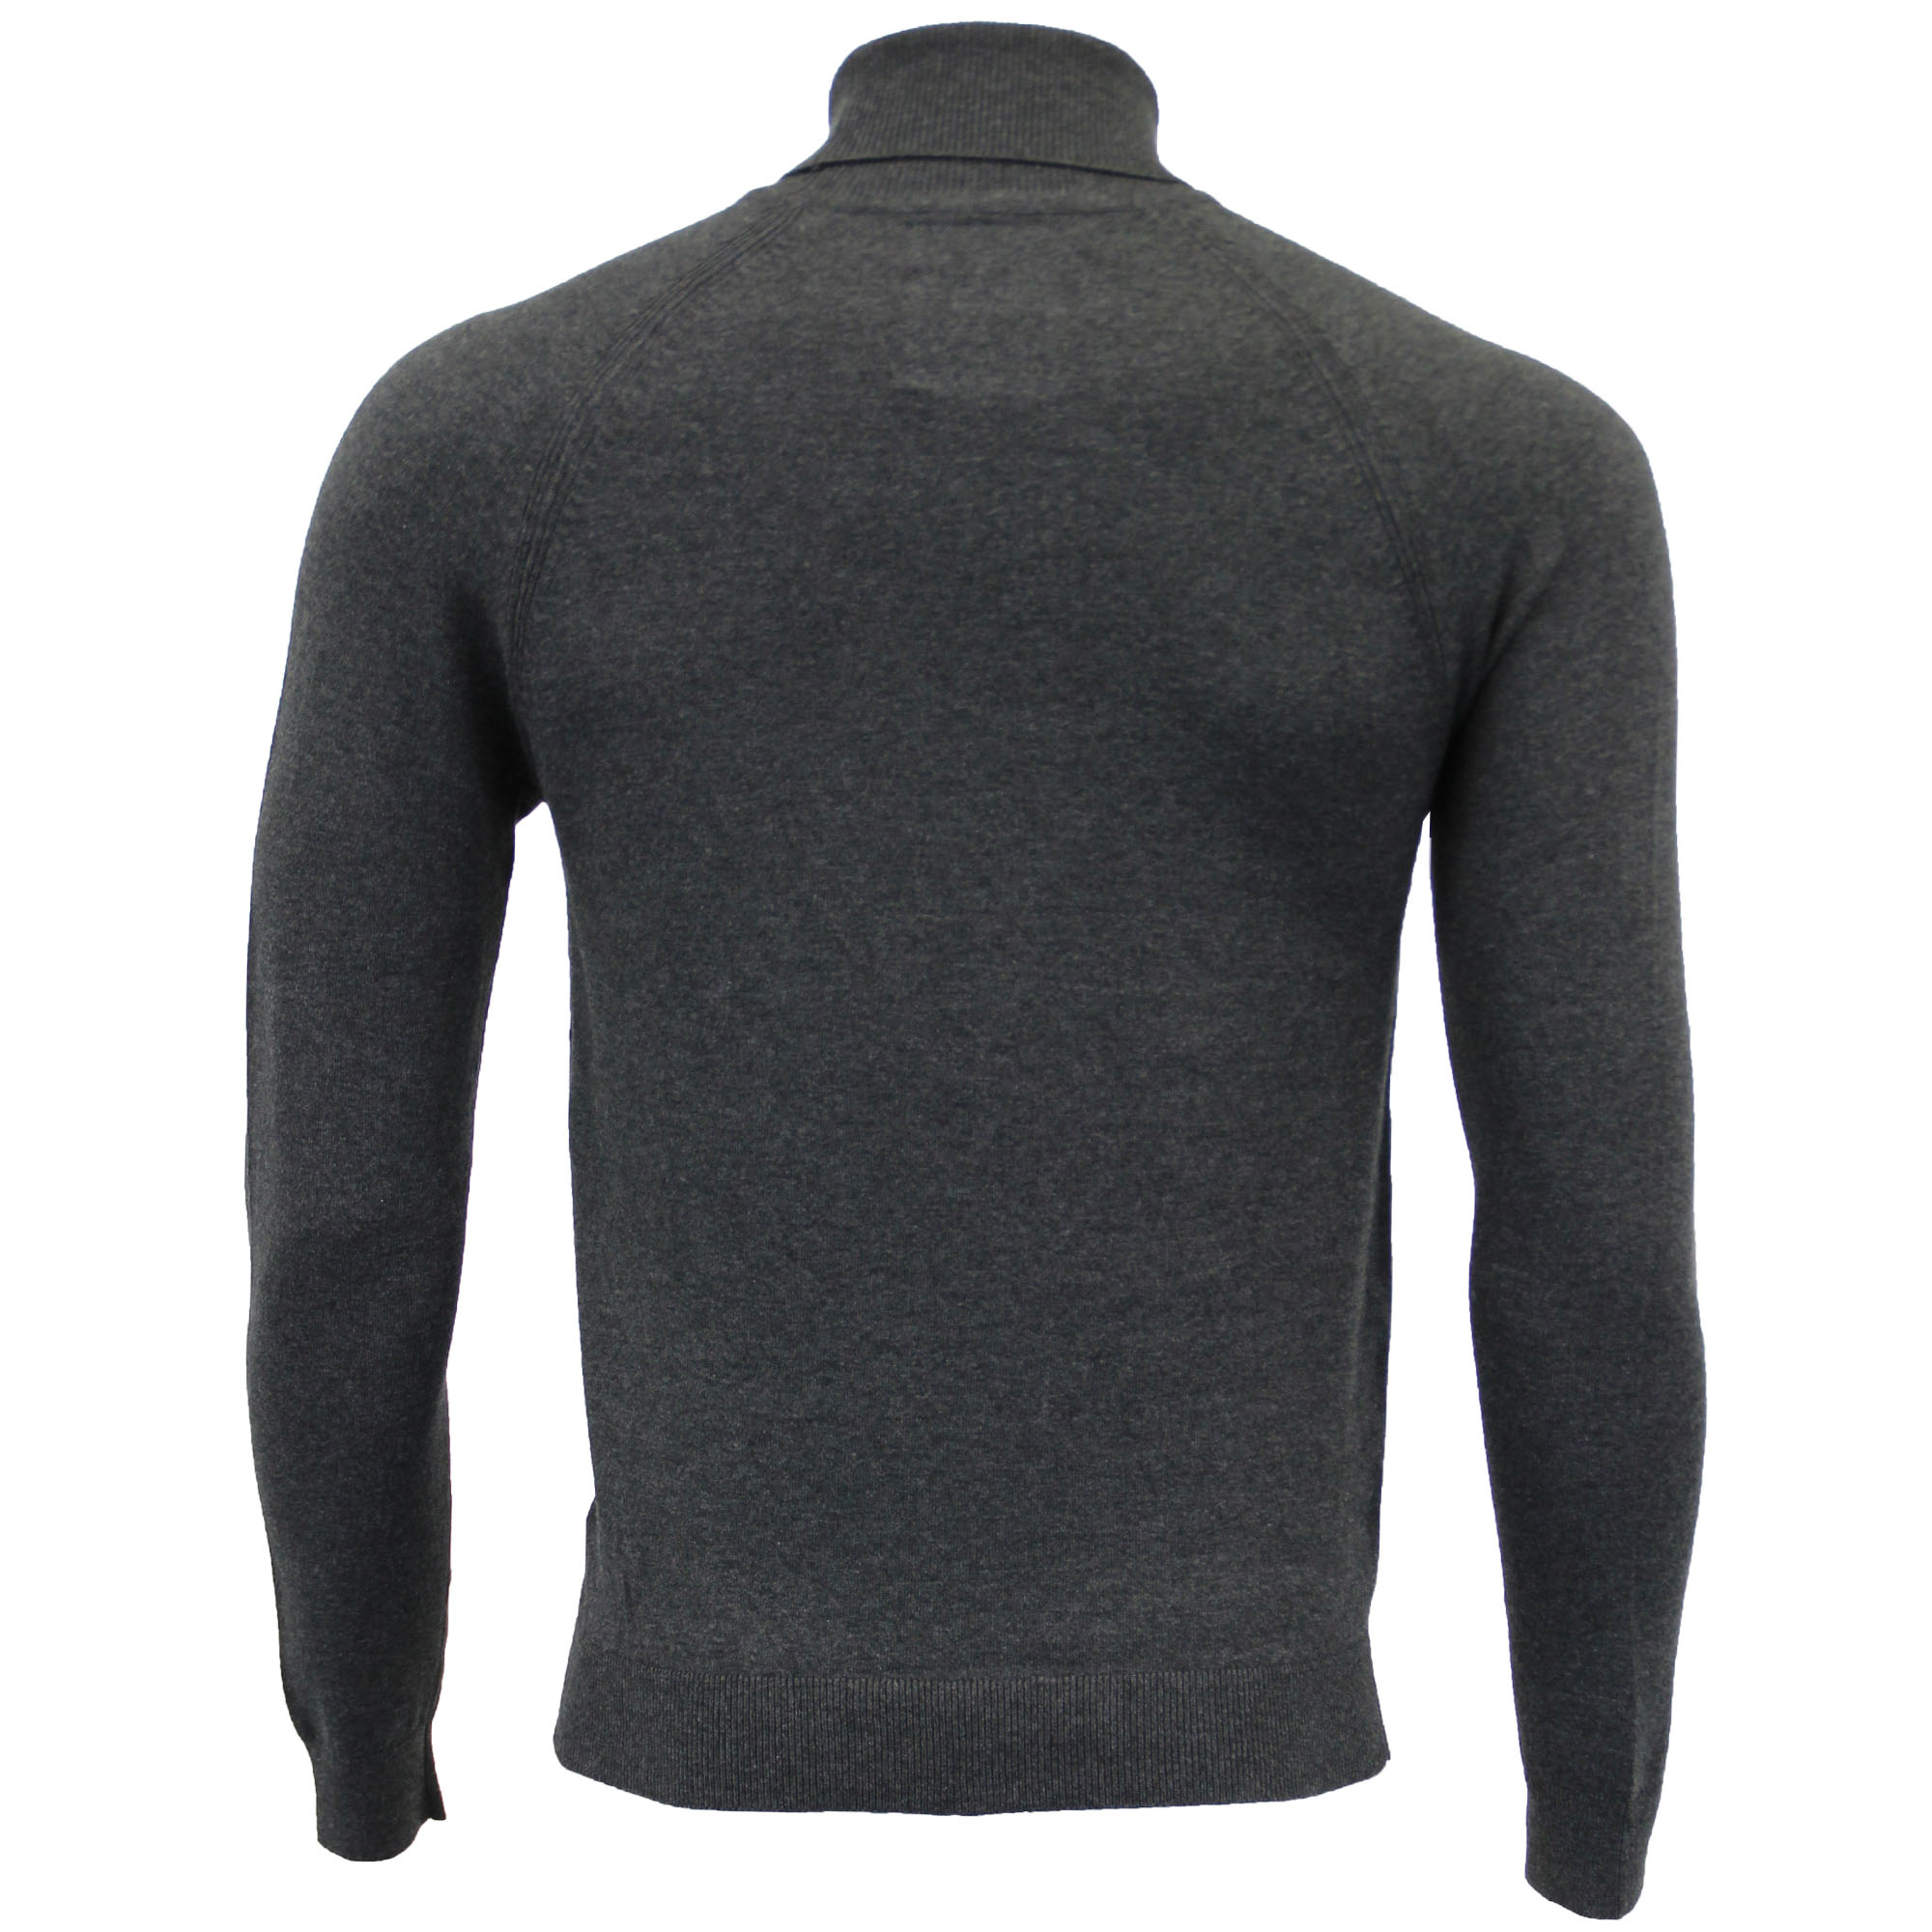 ddd41a220d Mens Jumpers Threadbare Knitted Polo Turtle Roll Neck Sweater ...